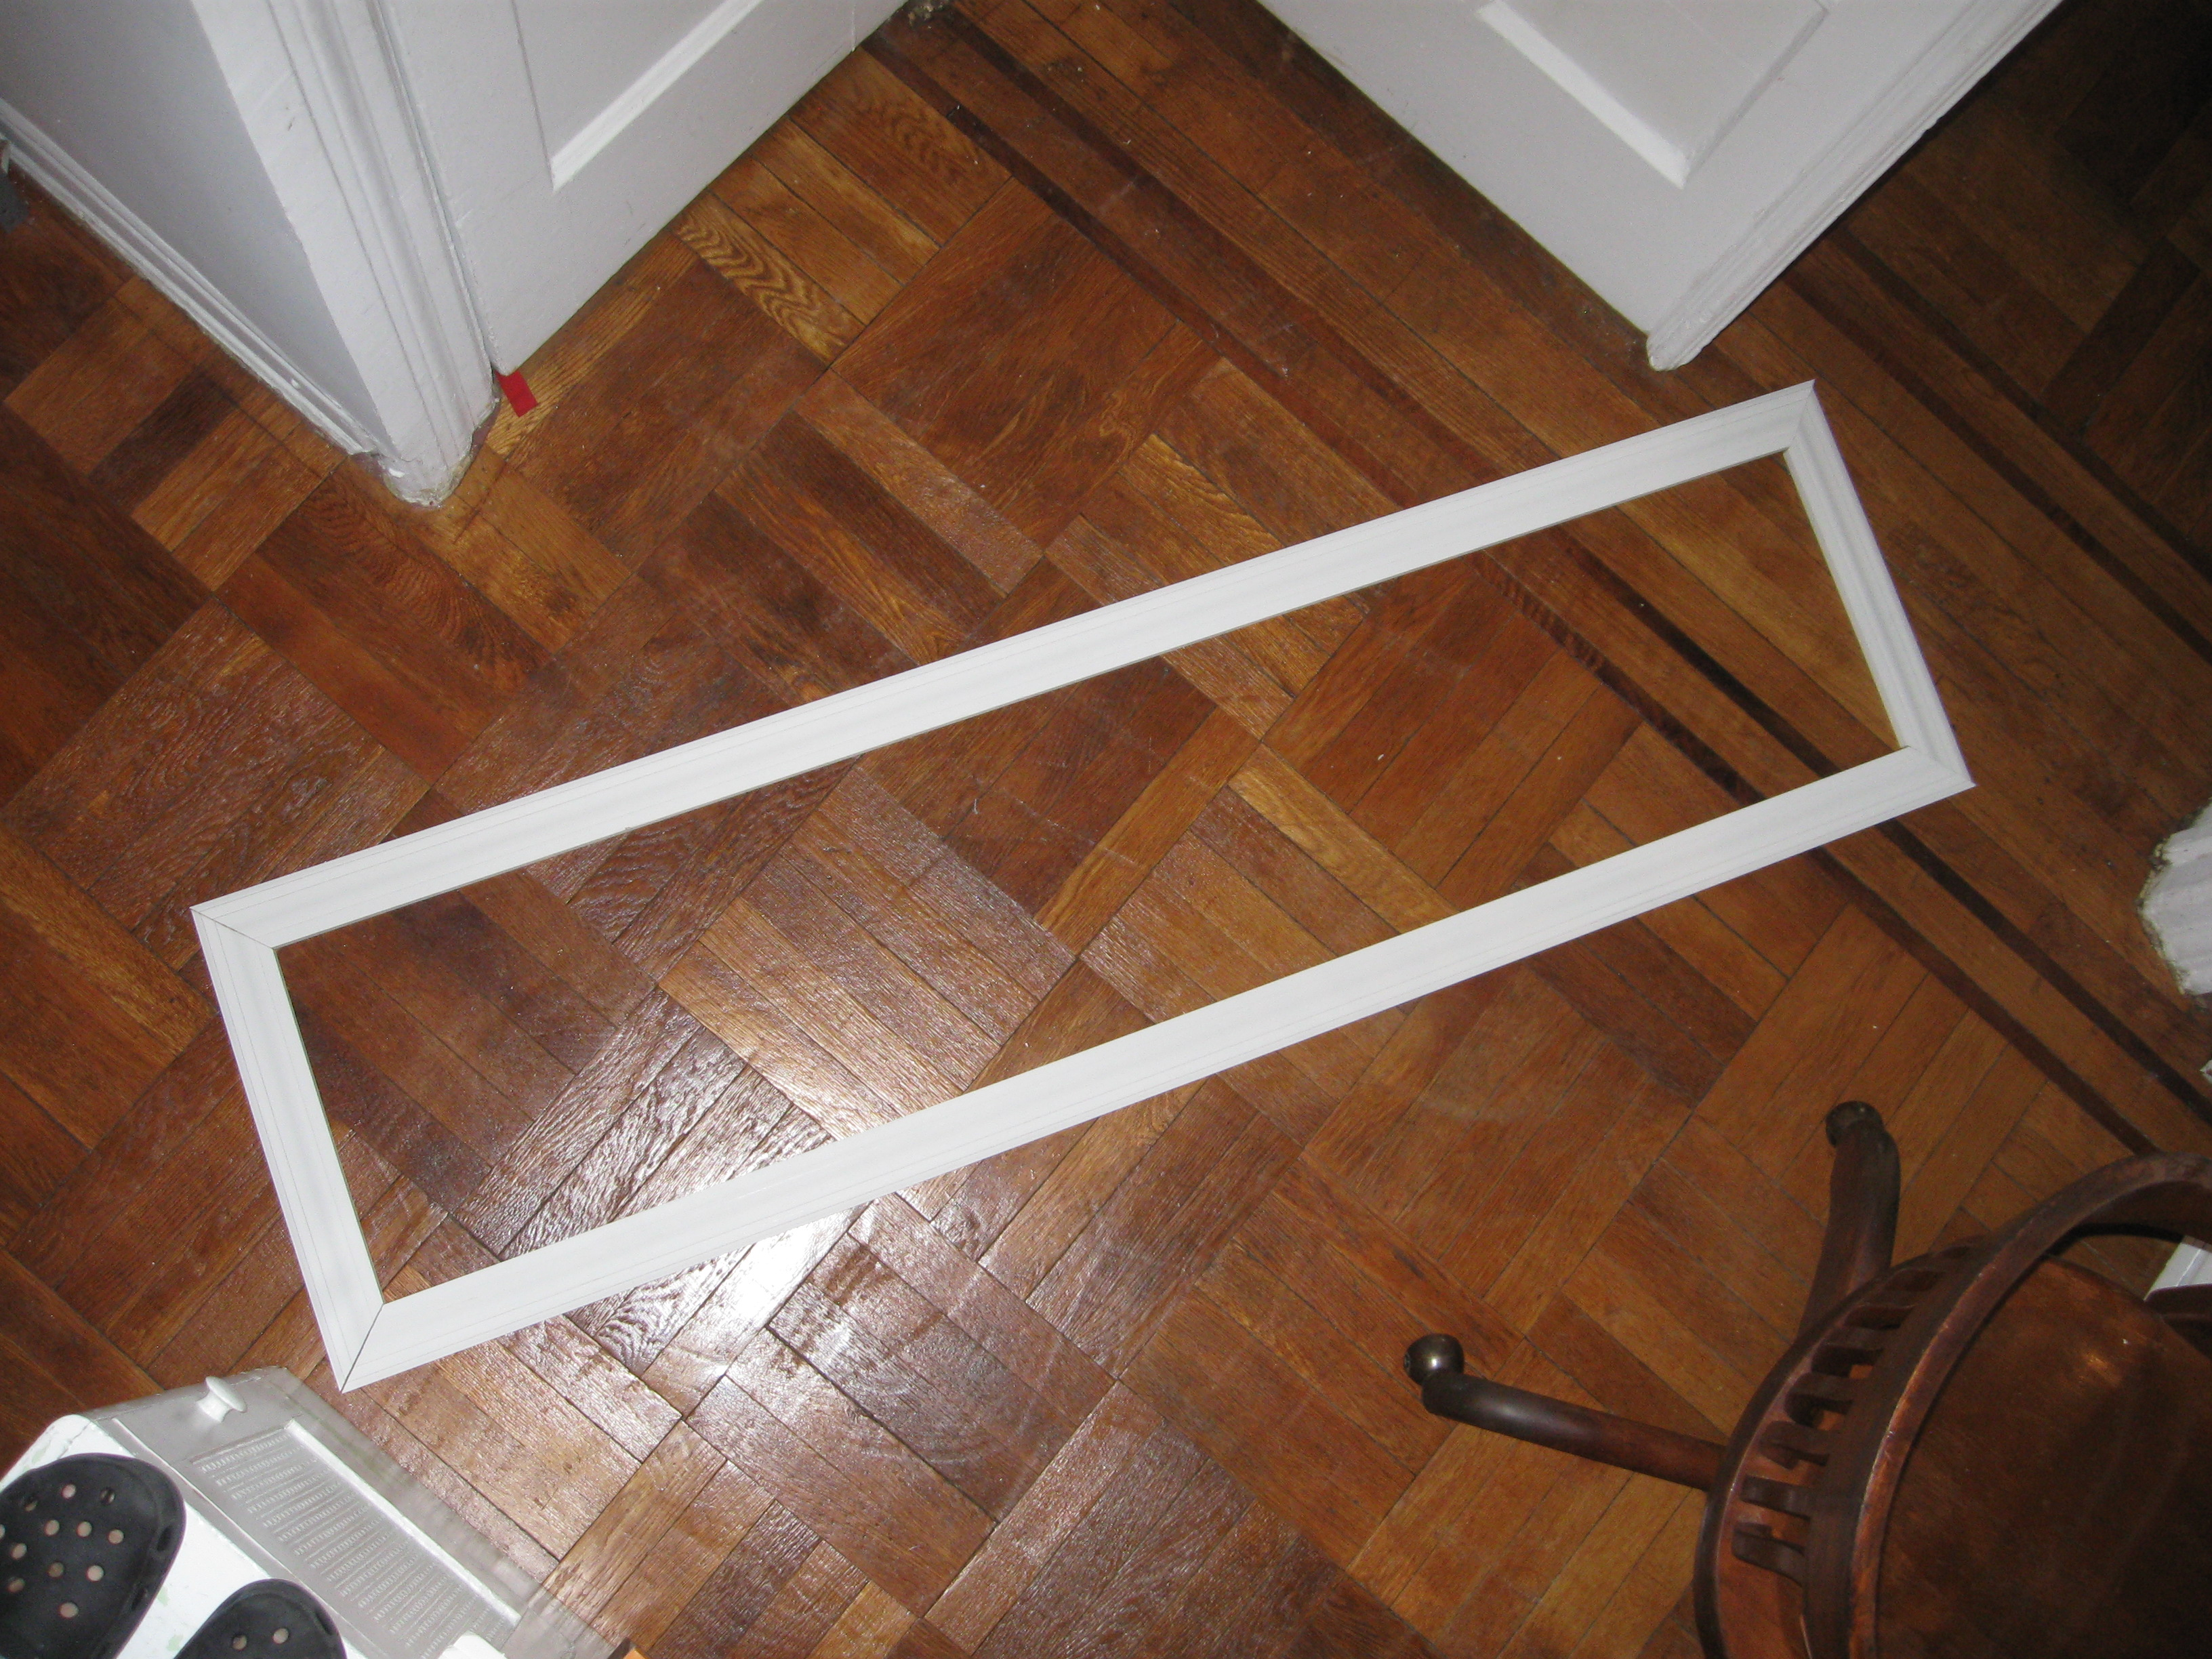 An image shot overhead of white wood trim that's been positioned as a frame